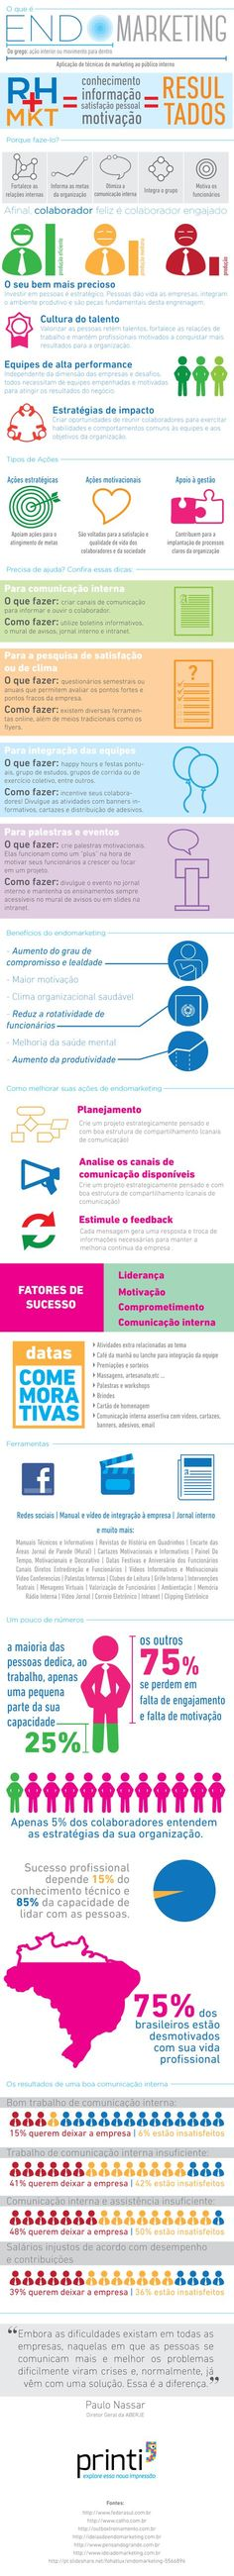 Infográfico - O que é Endomarketing: Aplicações de técnicas de marketing ao público interno